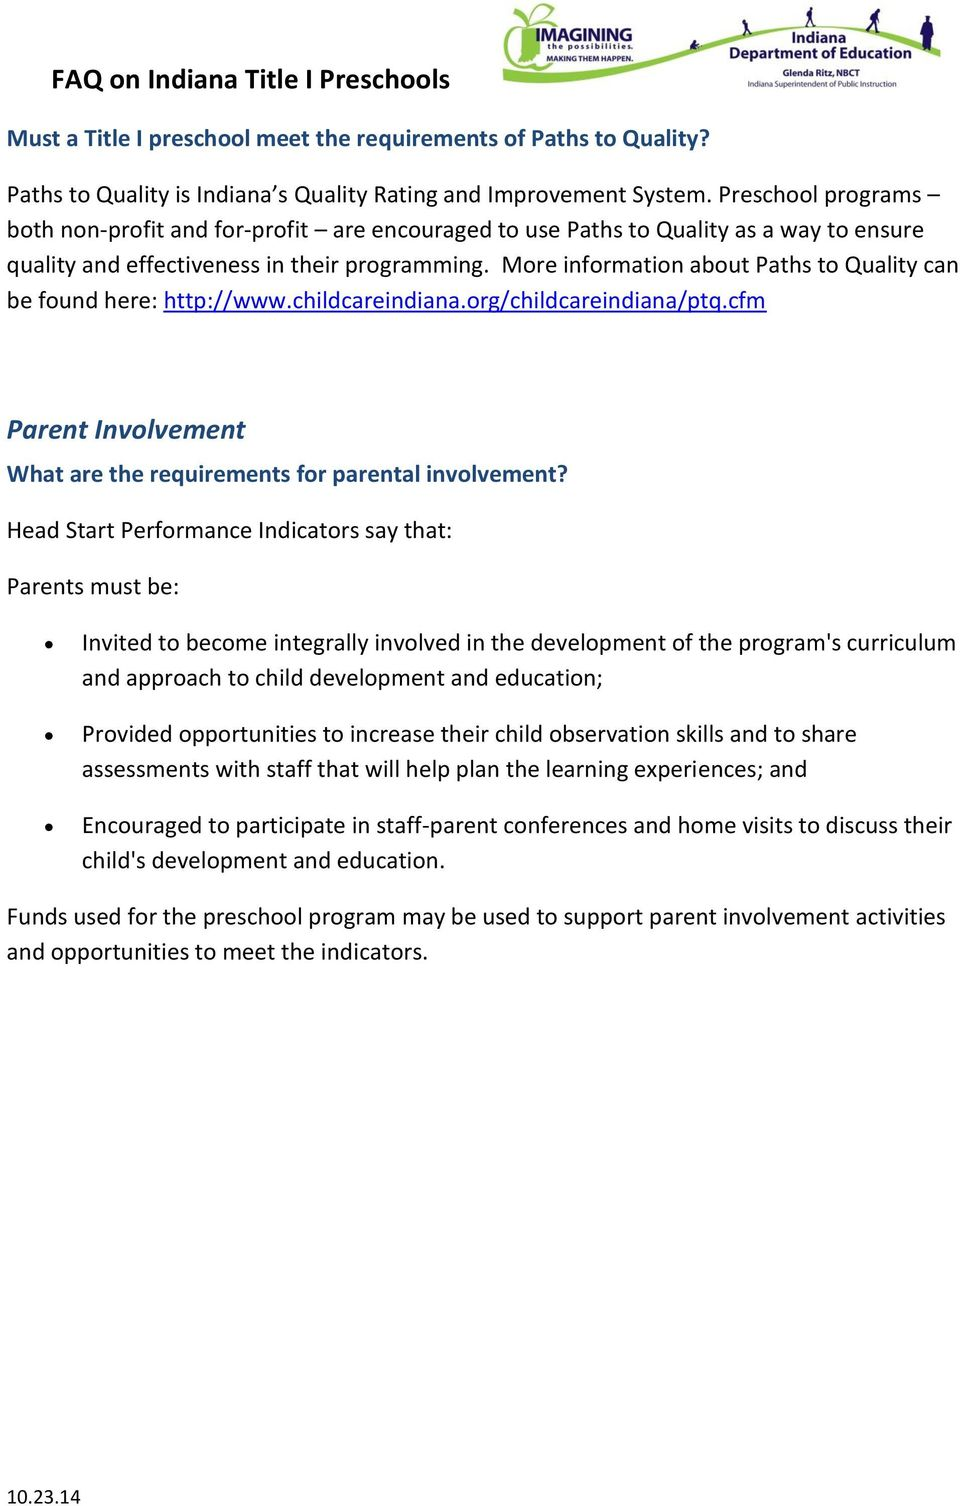 Mre infrmatin abut Paths t Quality can be fund here: http://www.childcareindiana.rg/childcareindiana/ptq.cfm Parent Invlvement What are the requirements fr parental invlvement?